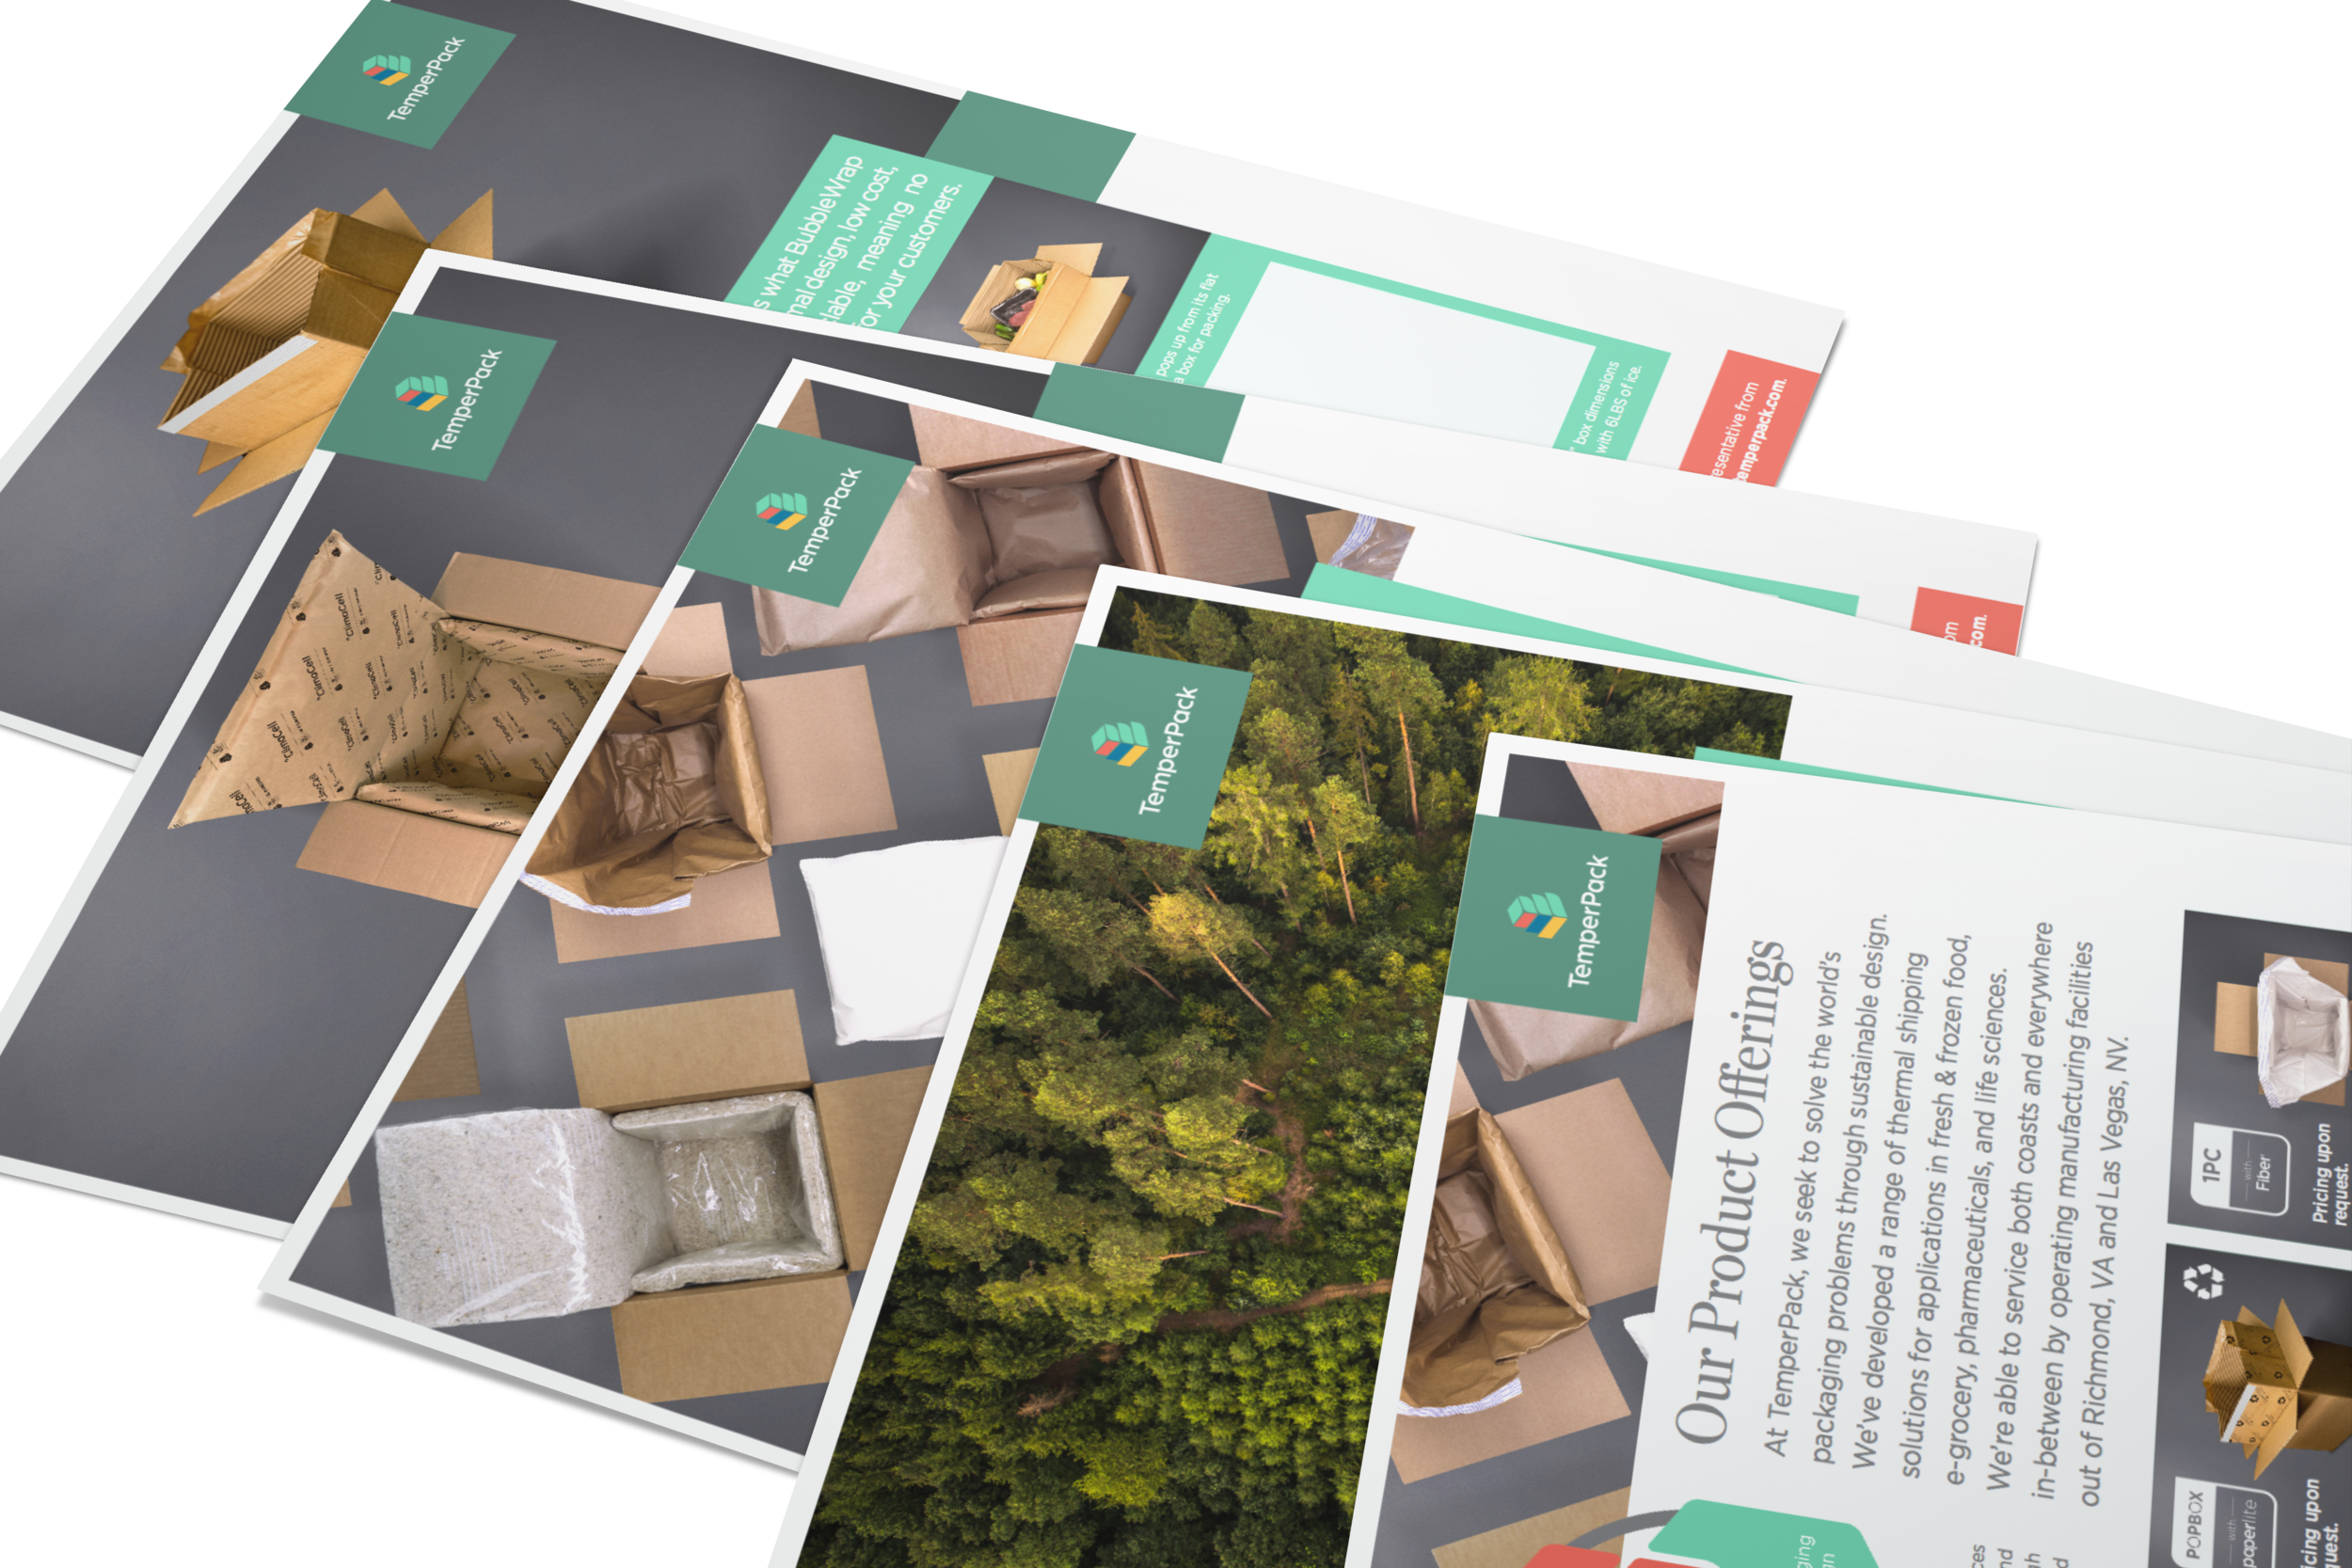 Sales Collateral - I then took the standards we developed and built out a tool-kit that our sales team could use to impress potential clients and close deals.